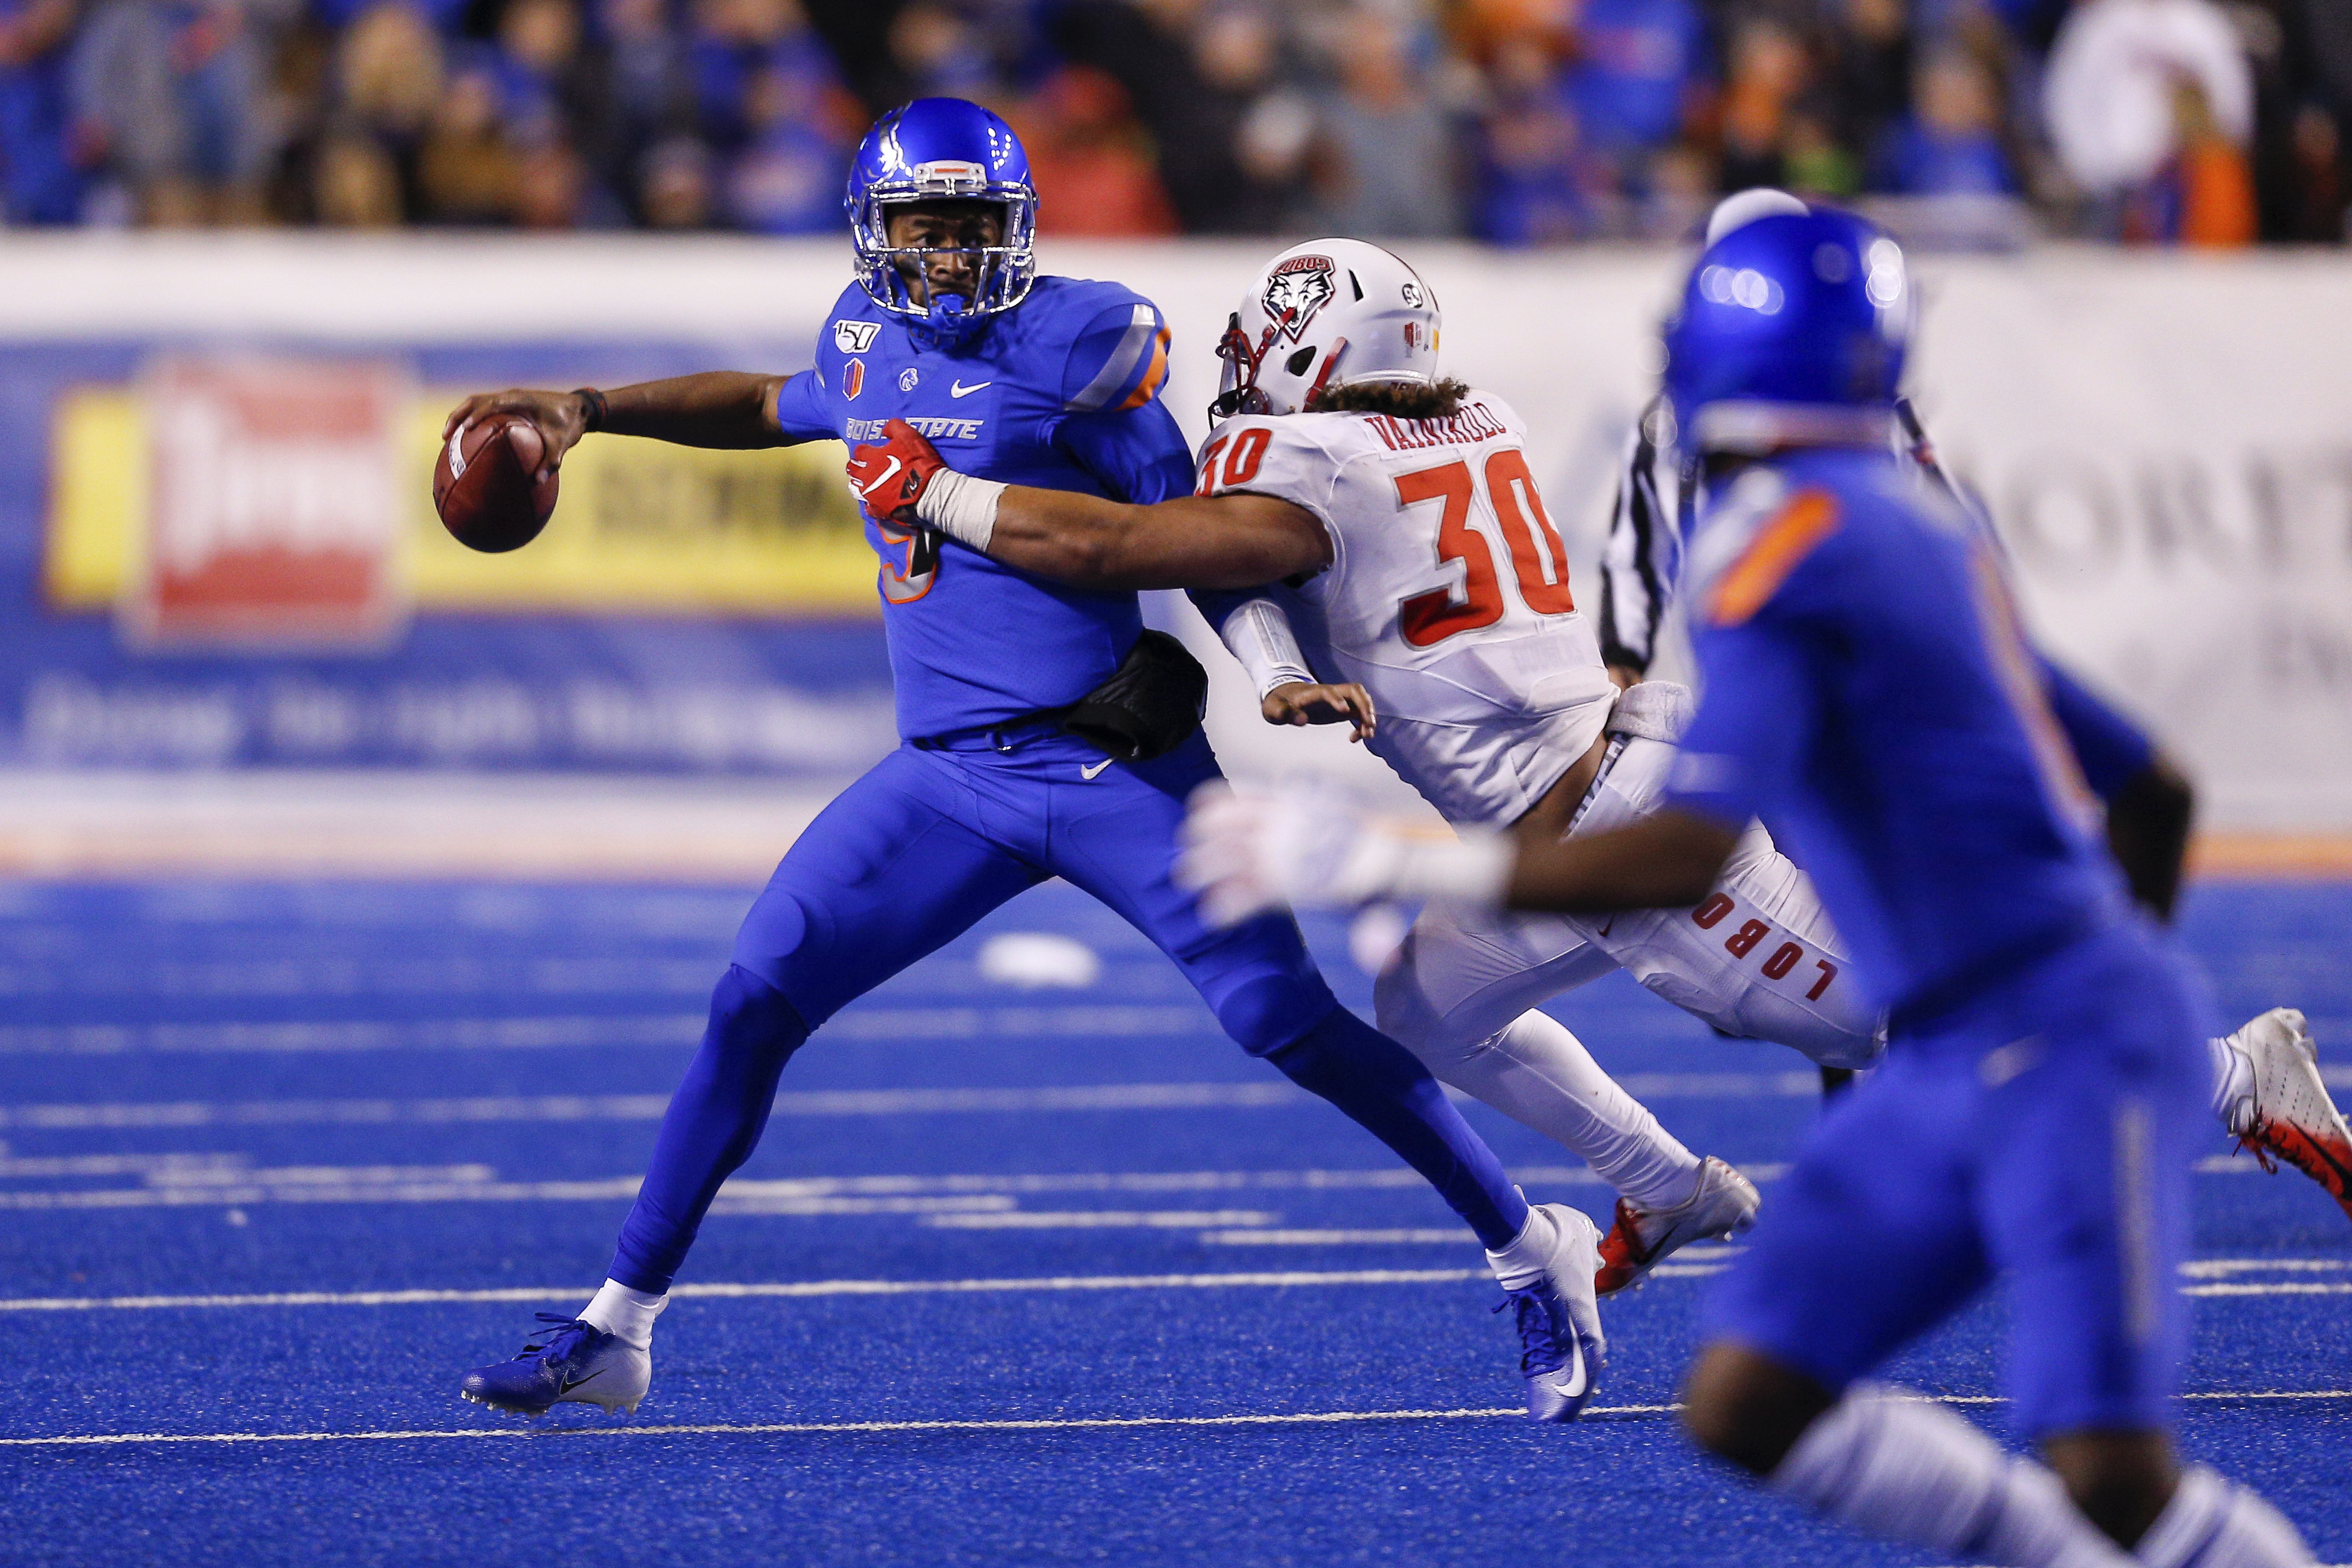 Boise State looking to clinch divisional title vs Utah State